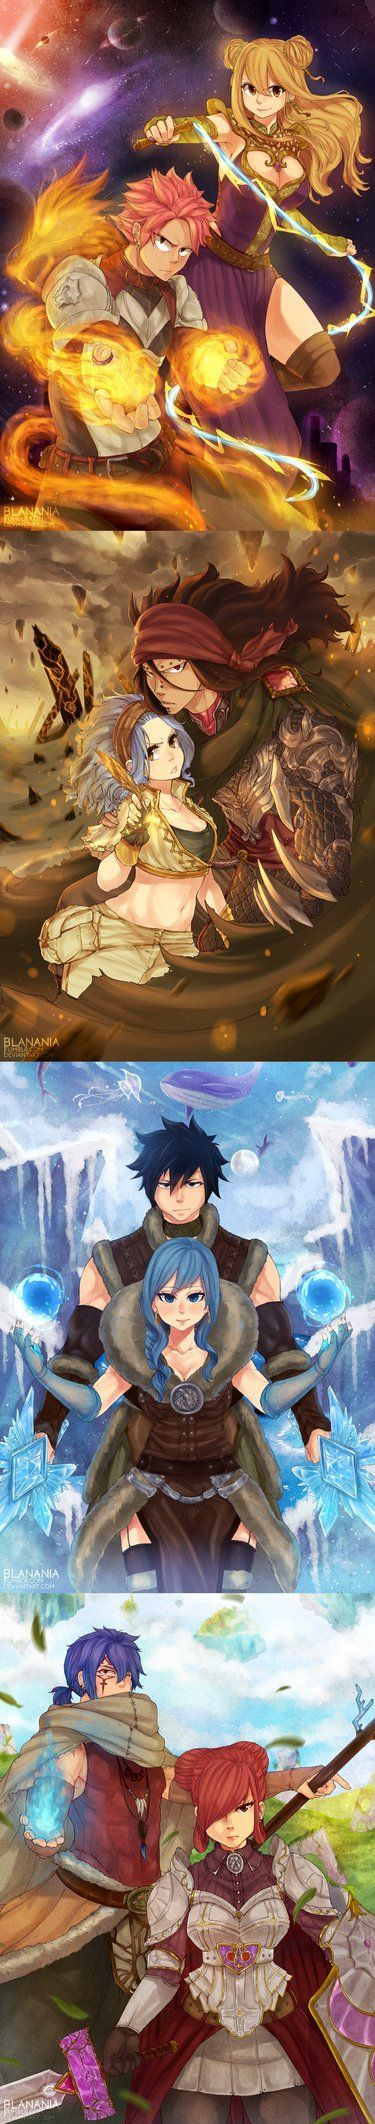 Guardians by blanania on DeviantArt Fairy Tail: